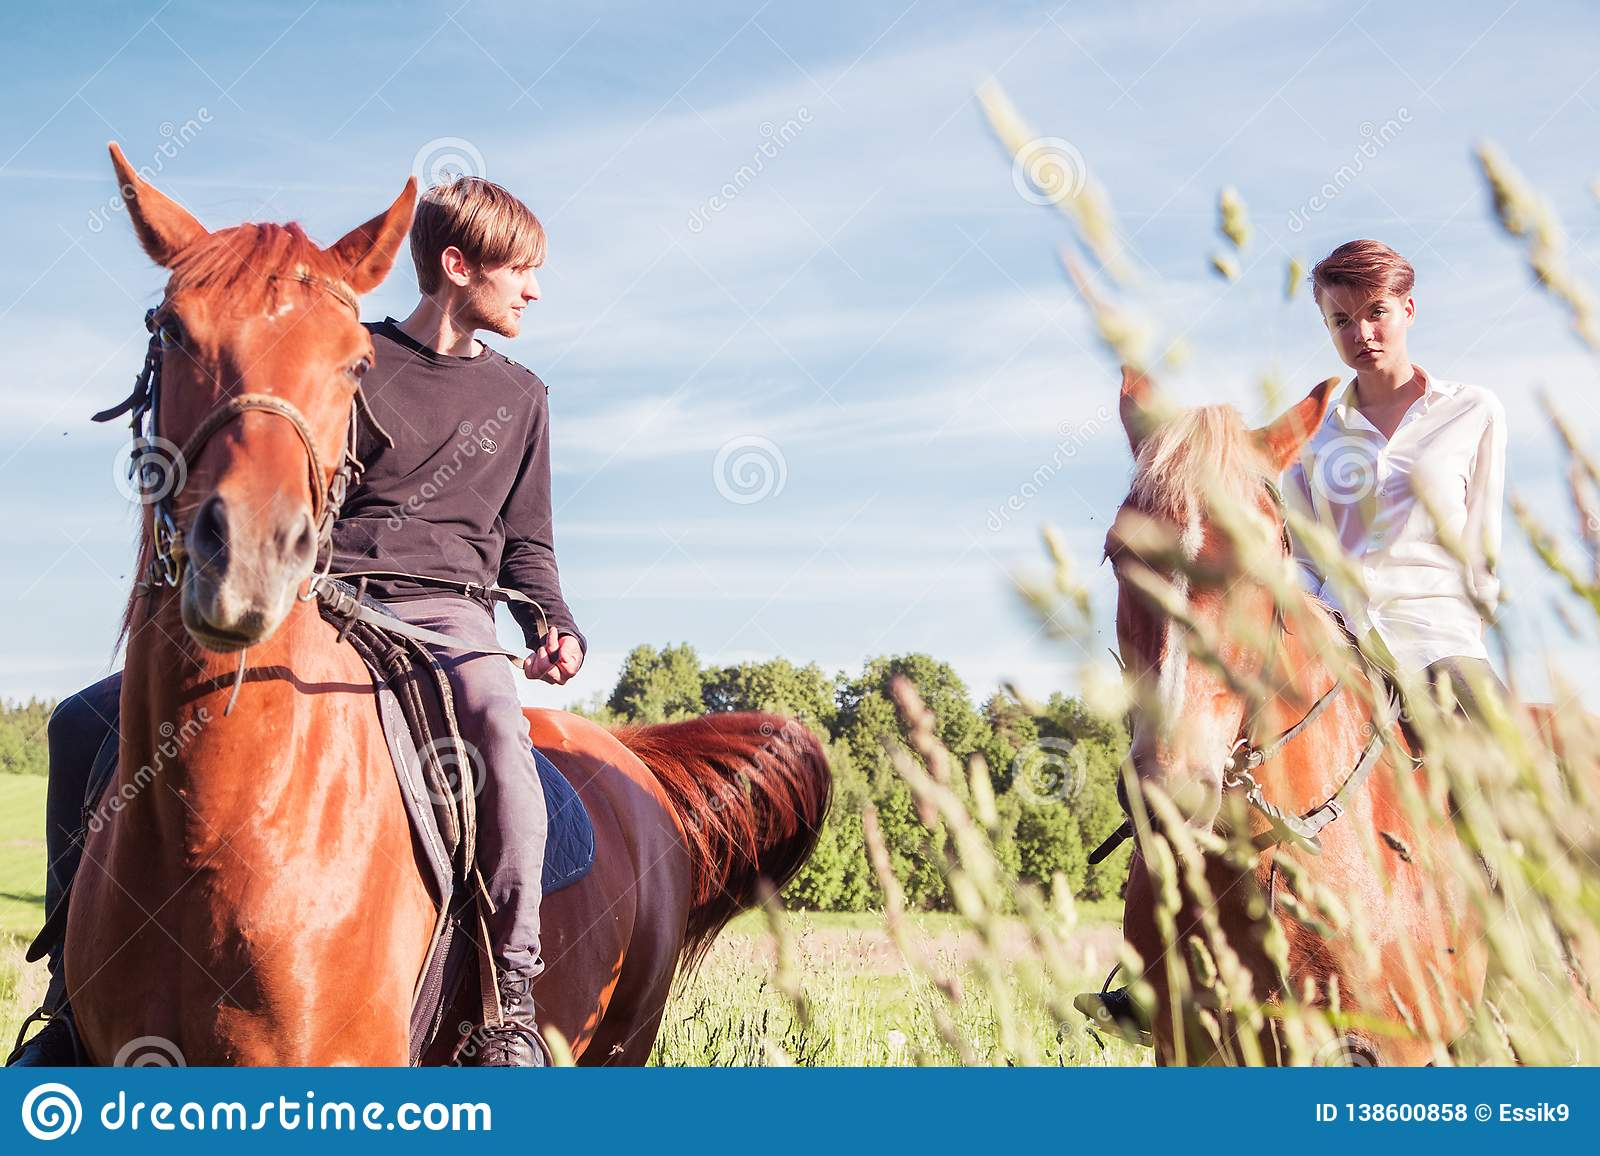 Man And Woman On Horseback Ride Together Stock Photo Image Of Equestrian Male 138600858